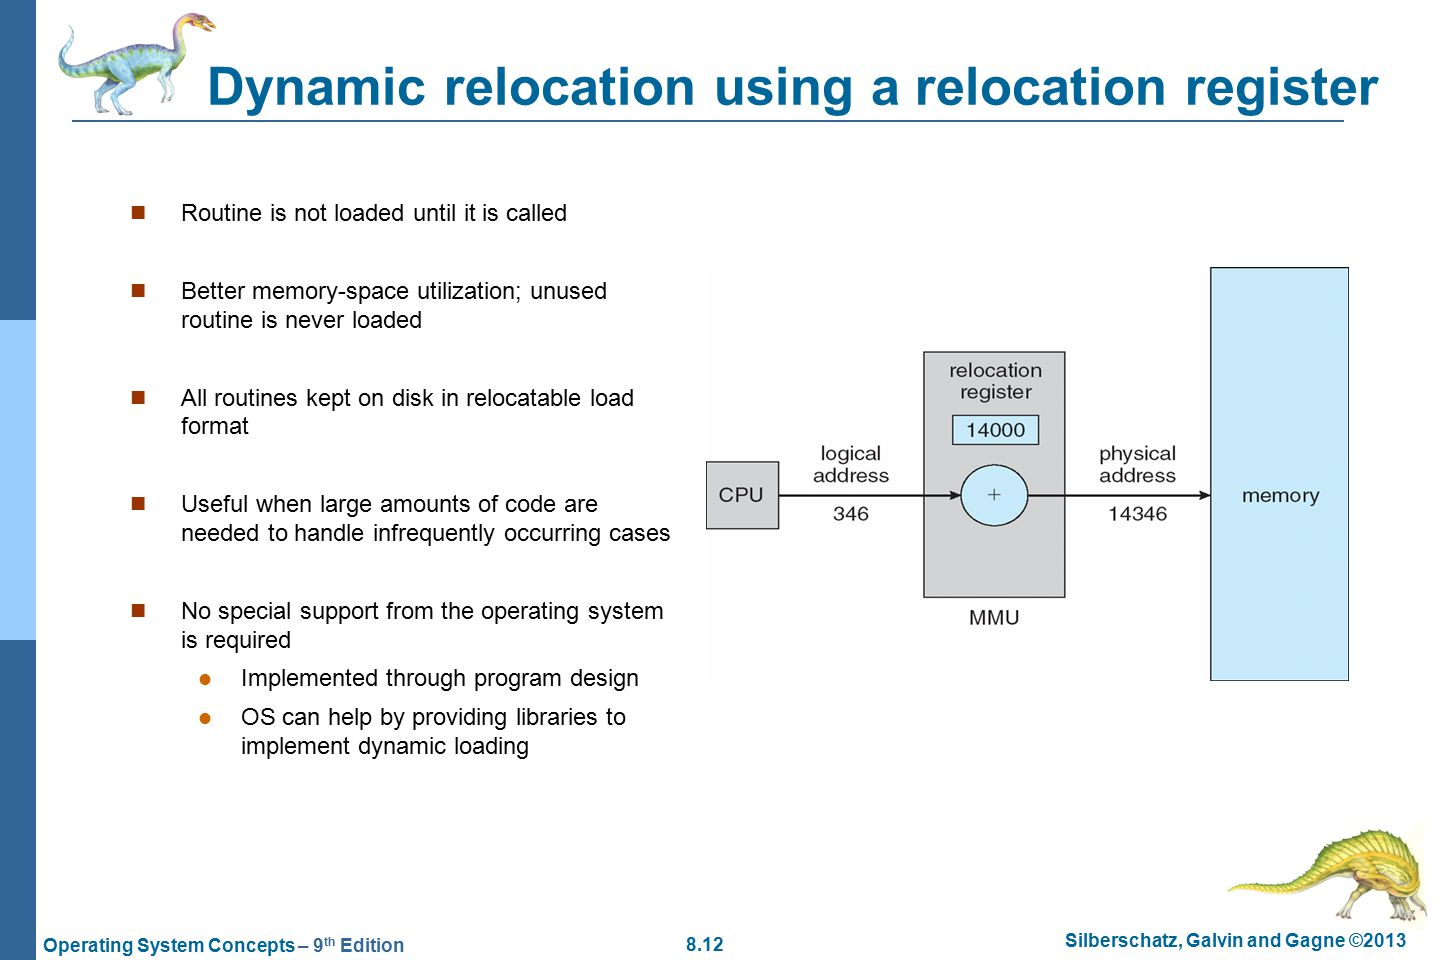 8.12 Silberschatz, Galvin and Gagne ©2013 Operating System Concepts – 9 th Edition Dynamic relocation using a relocation register Routine is not loaded until it is called Better memory-space utilization; unused routine is never loaded All routines kept on disk in relocatable load format Useful when large amounts of code are needed to handle infrequently occurring cases No special support from the operating system is required Implemented through program design OS can help by providing libraries to implement dynamic loading